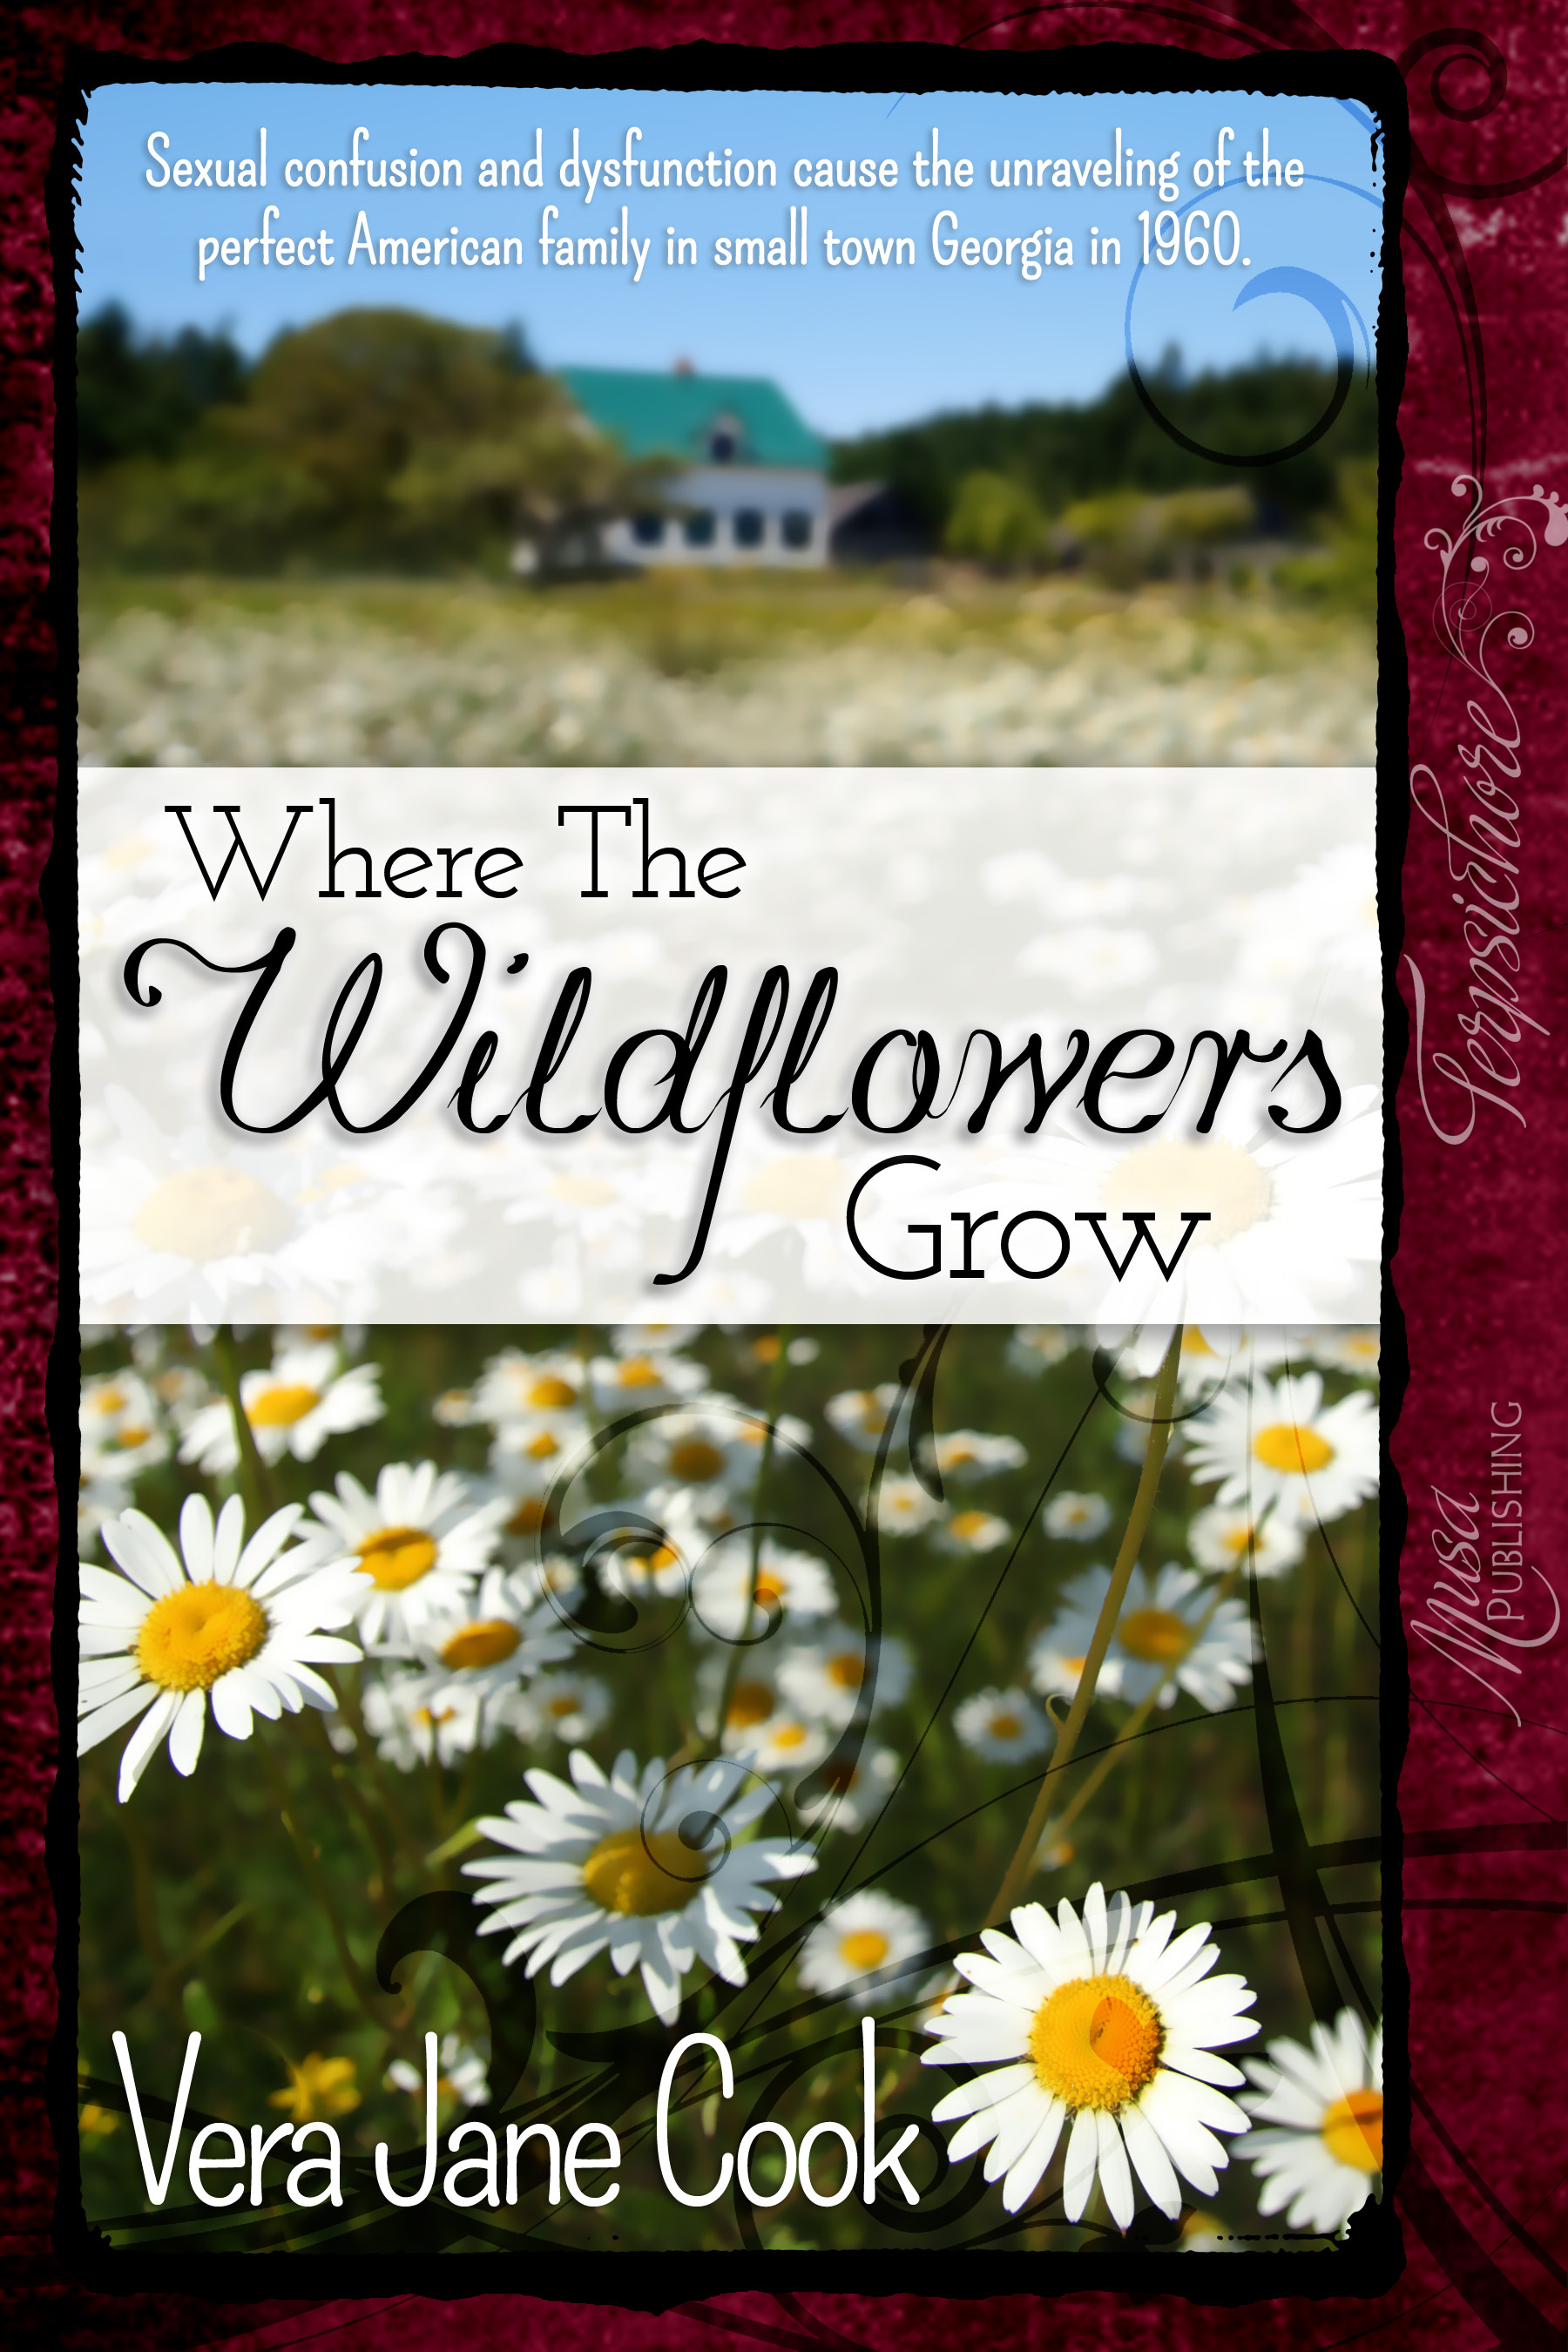 Where The Wildflowers Grow